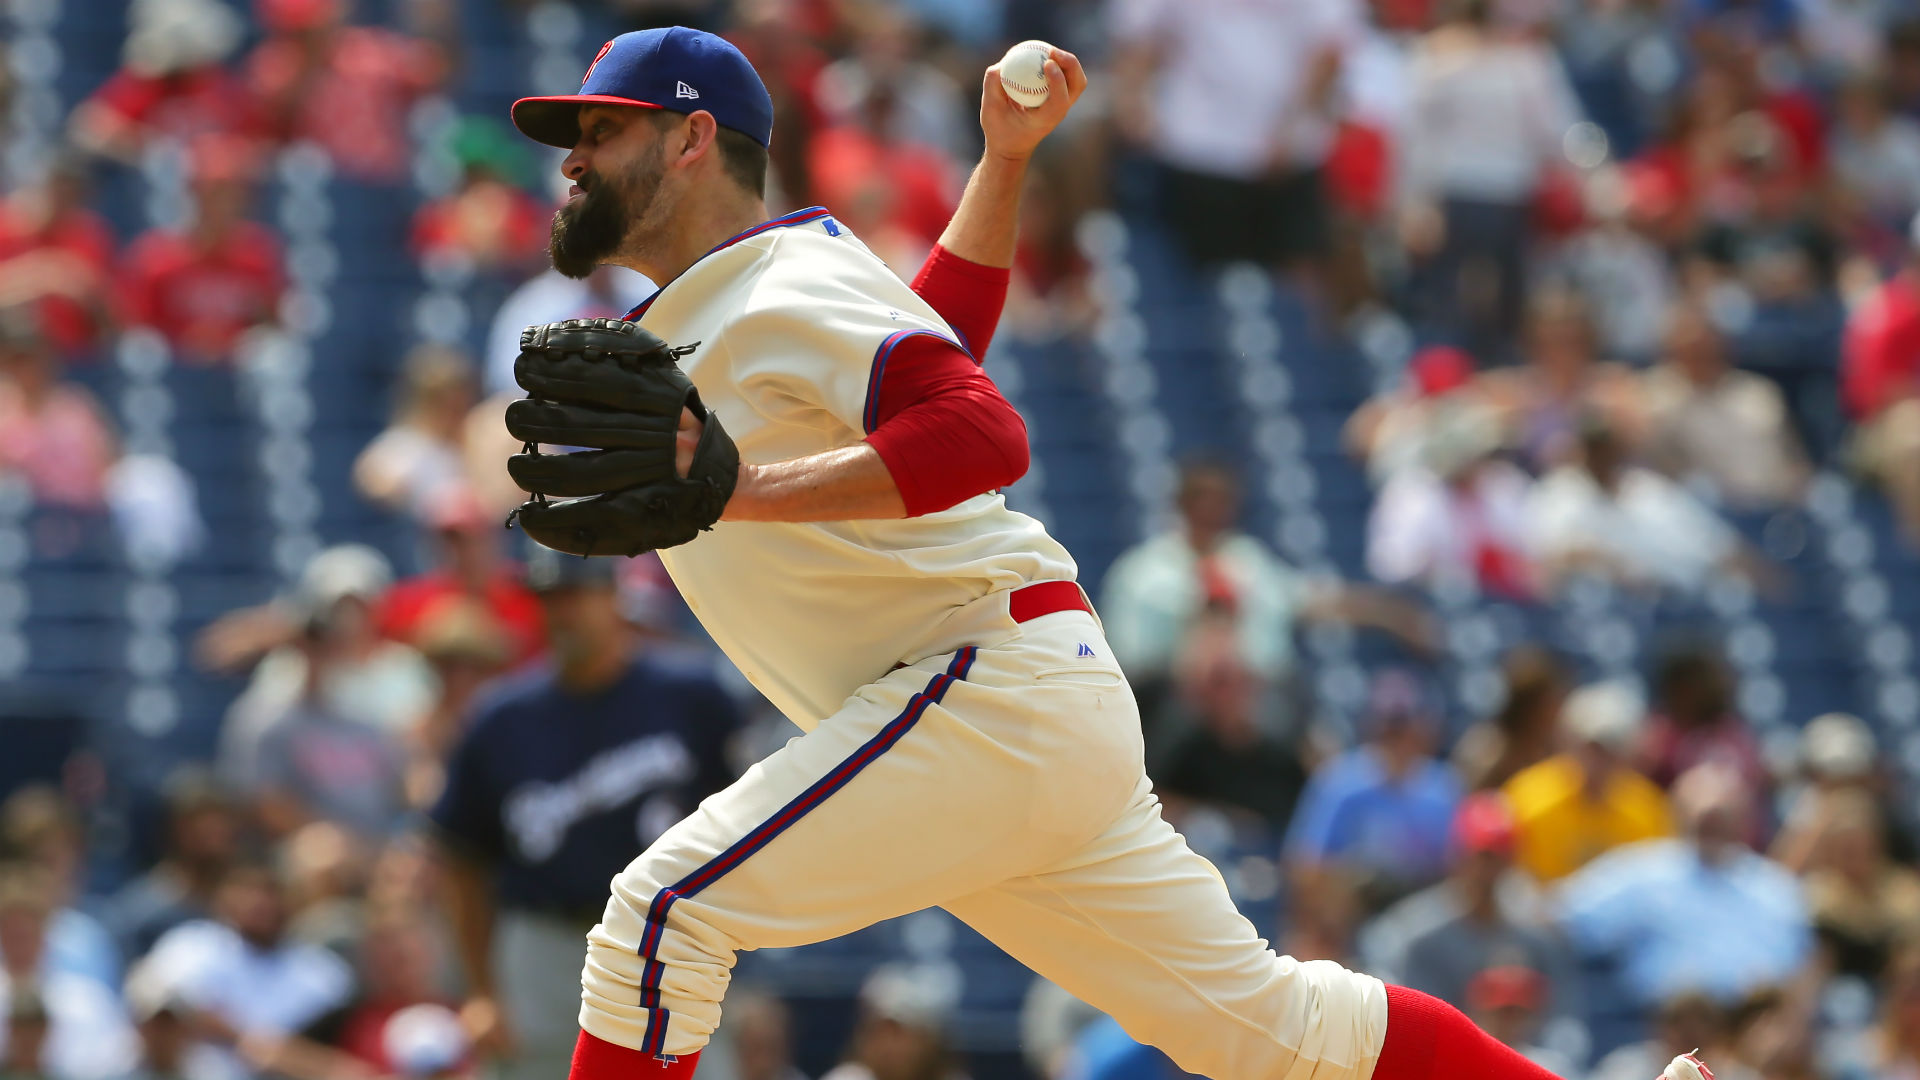 Rockies acquire All-Star reliever Pat Neshek from Phillies